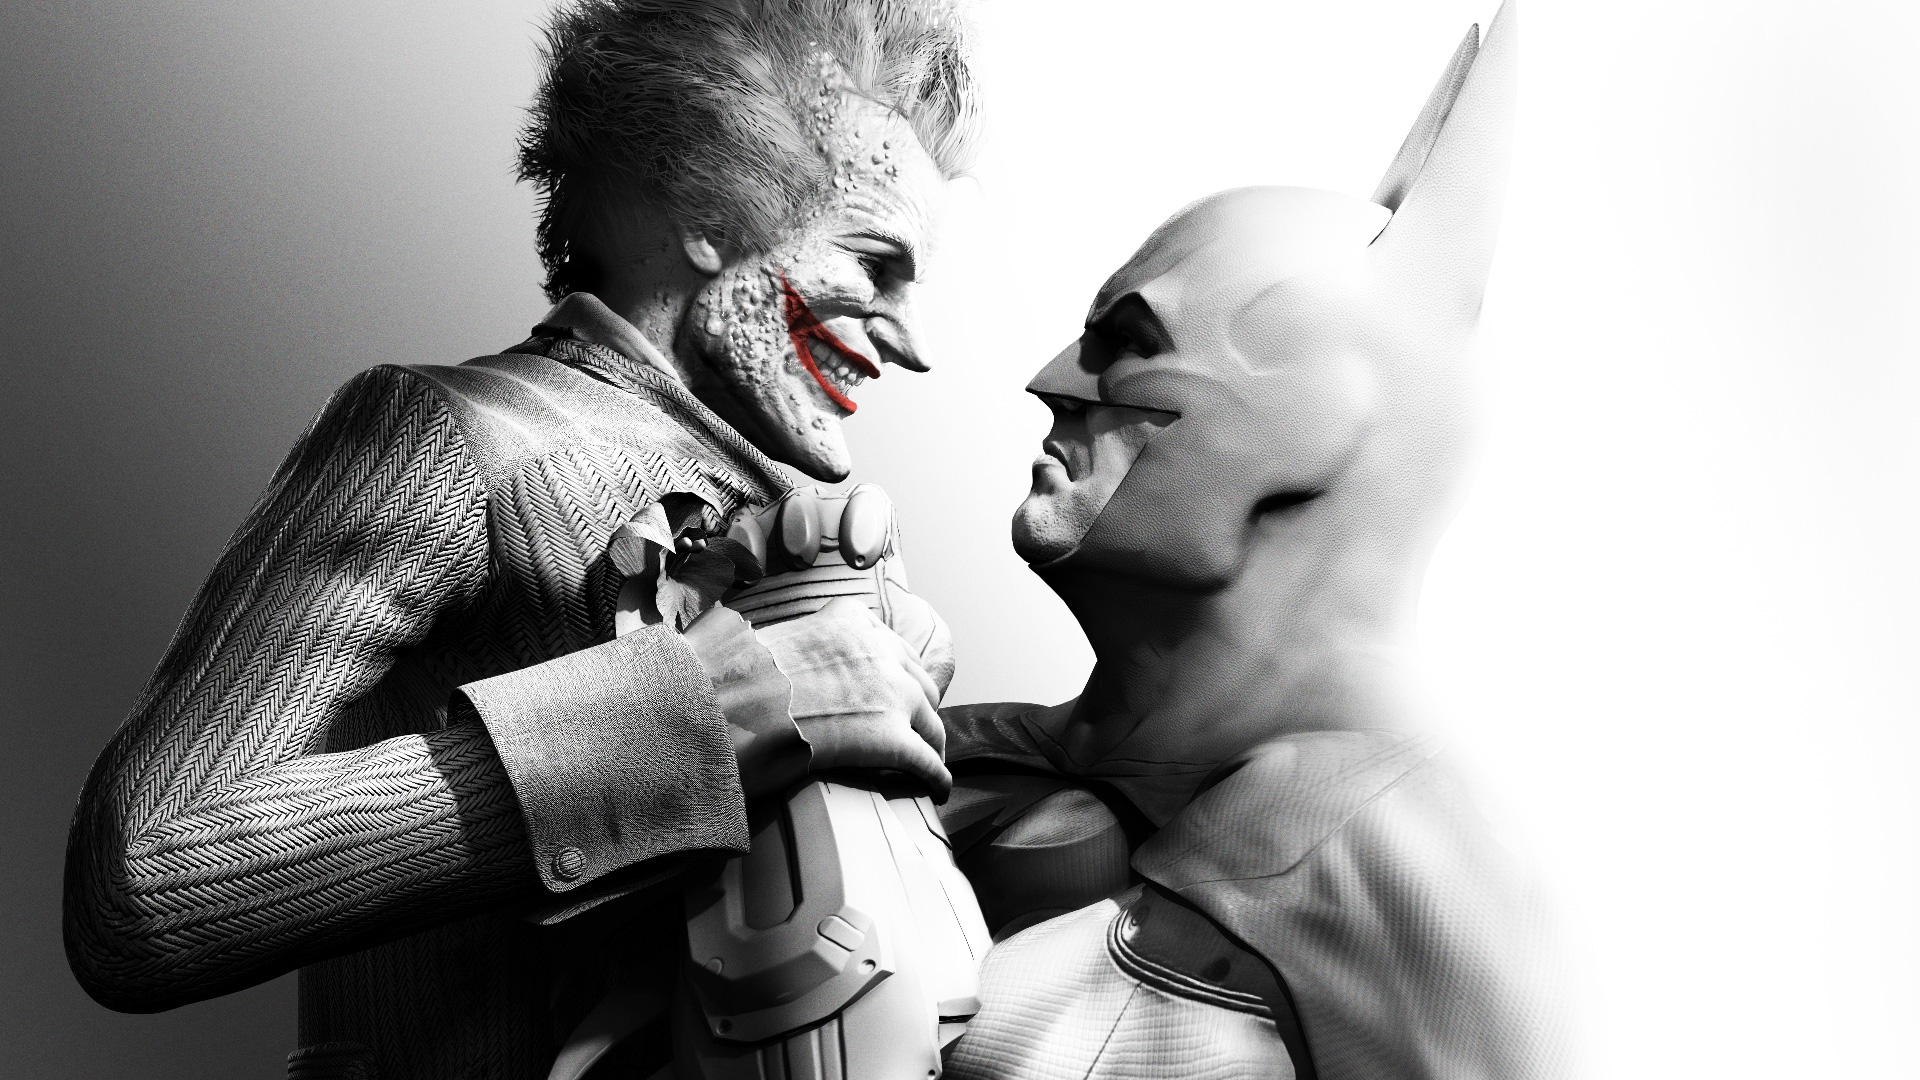 Batman Arkham City [Wallpapers 1920x1080] Mundo de videojuegos 1920x1080